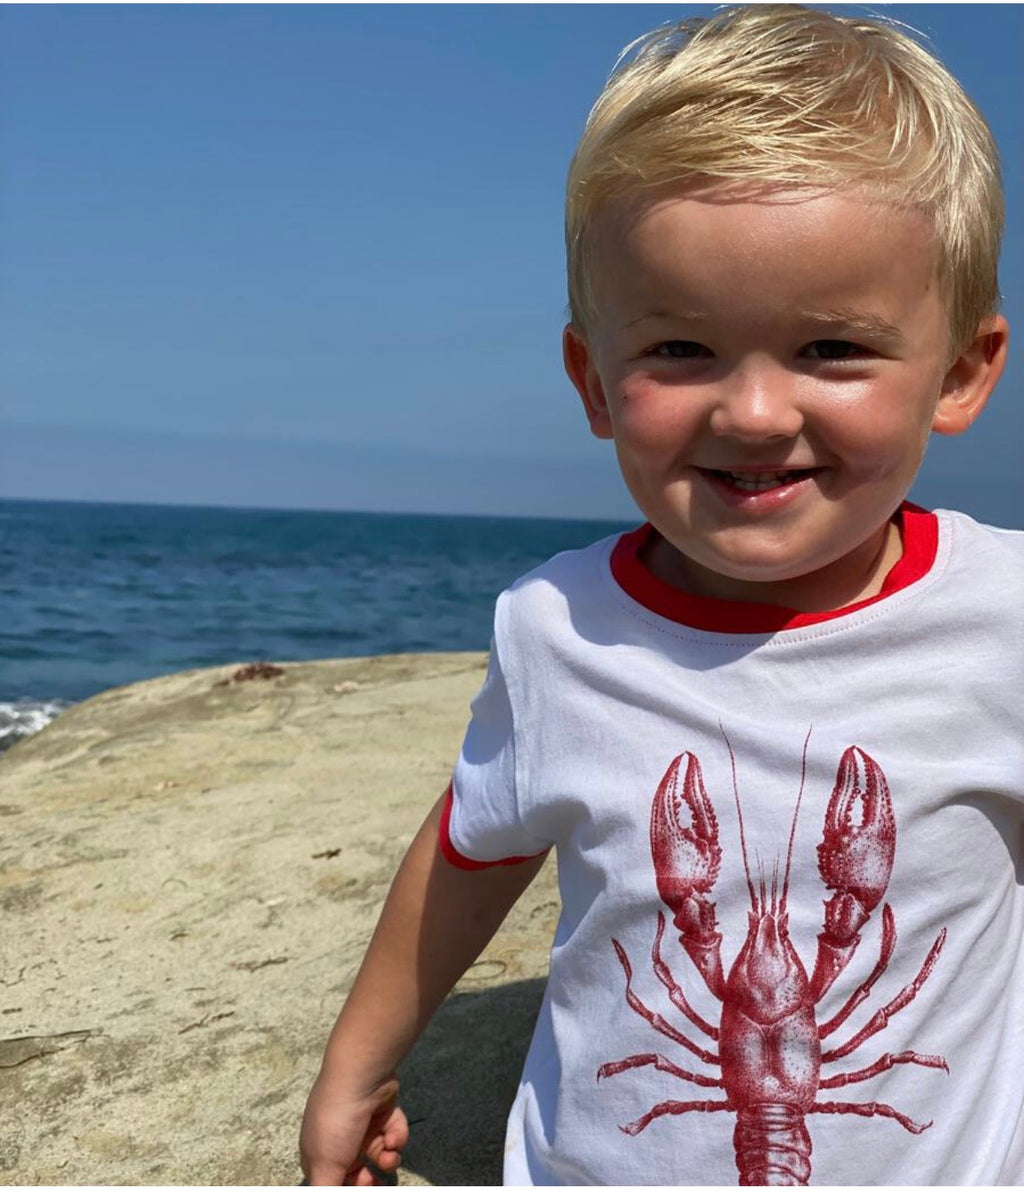 Boy lobster T-shirt